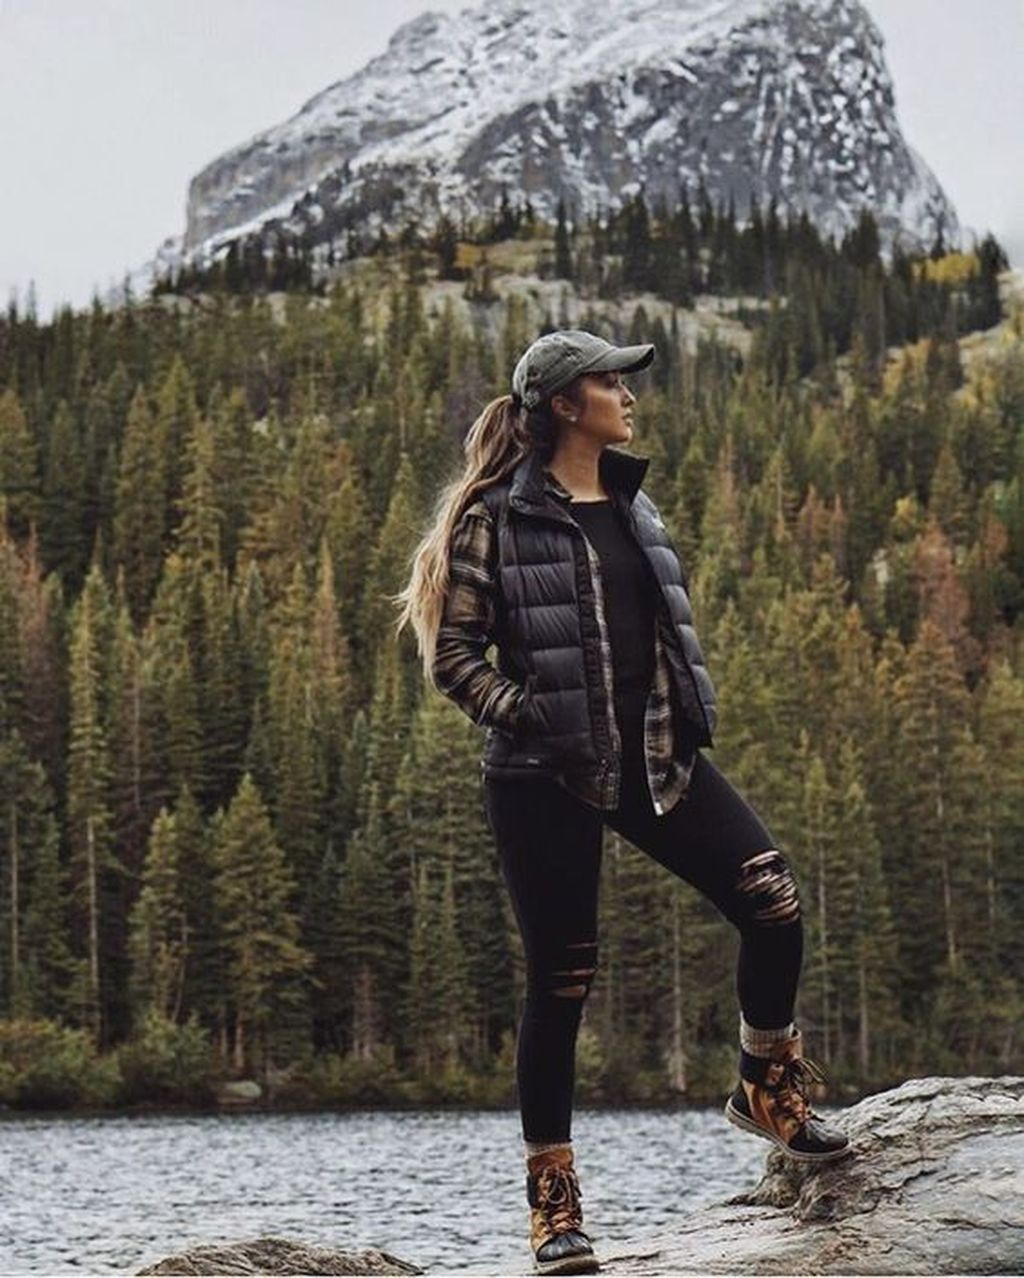 35 Sporty Winter Workout Outfit For Women Cute Hiking Outfit Workout Outfits Winter Hiking Outfit Women